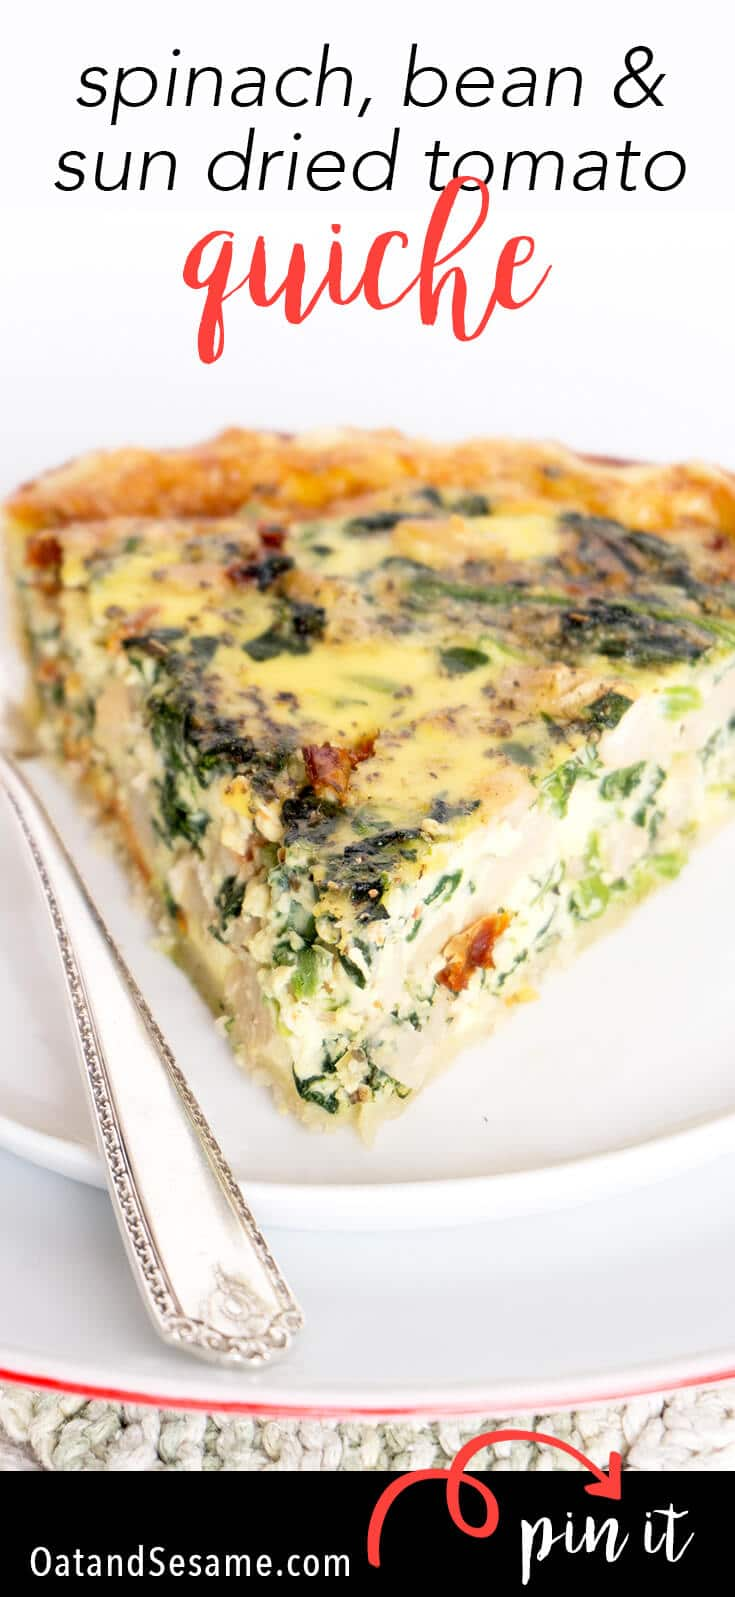 Need a BREAKFAST QUICHE? This favorite breakfast/brunch quiche is stuffed with spinach, beans, sun dried tomatoes and fontina cheese! | #QUICHE | #BREAKFAST | #Recipes at OatandSesame.com